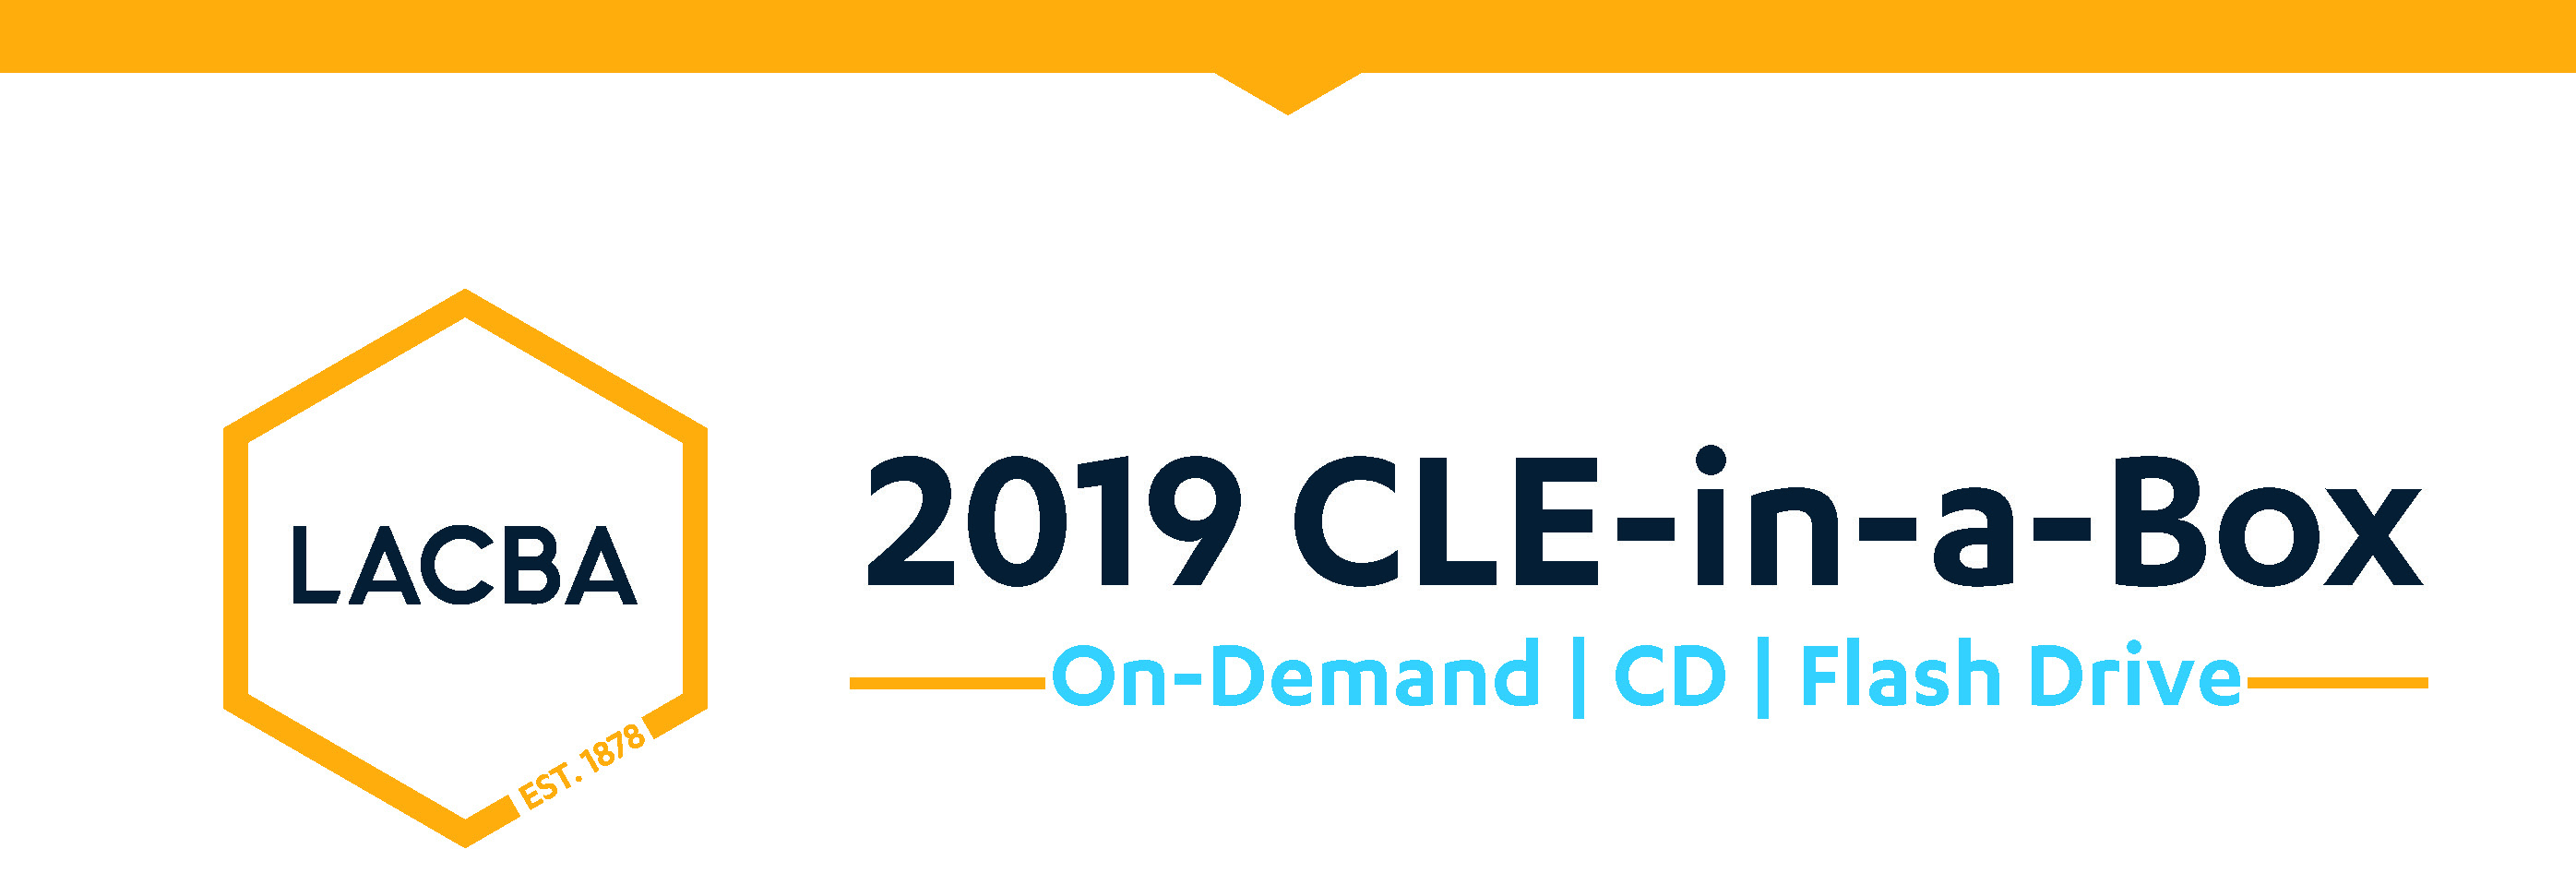 2019-cle-in-a-box-banner-670w-no-sub-heading